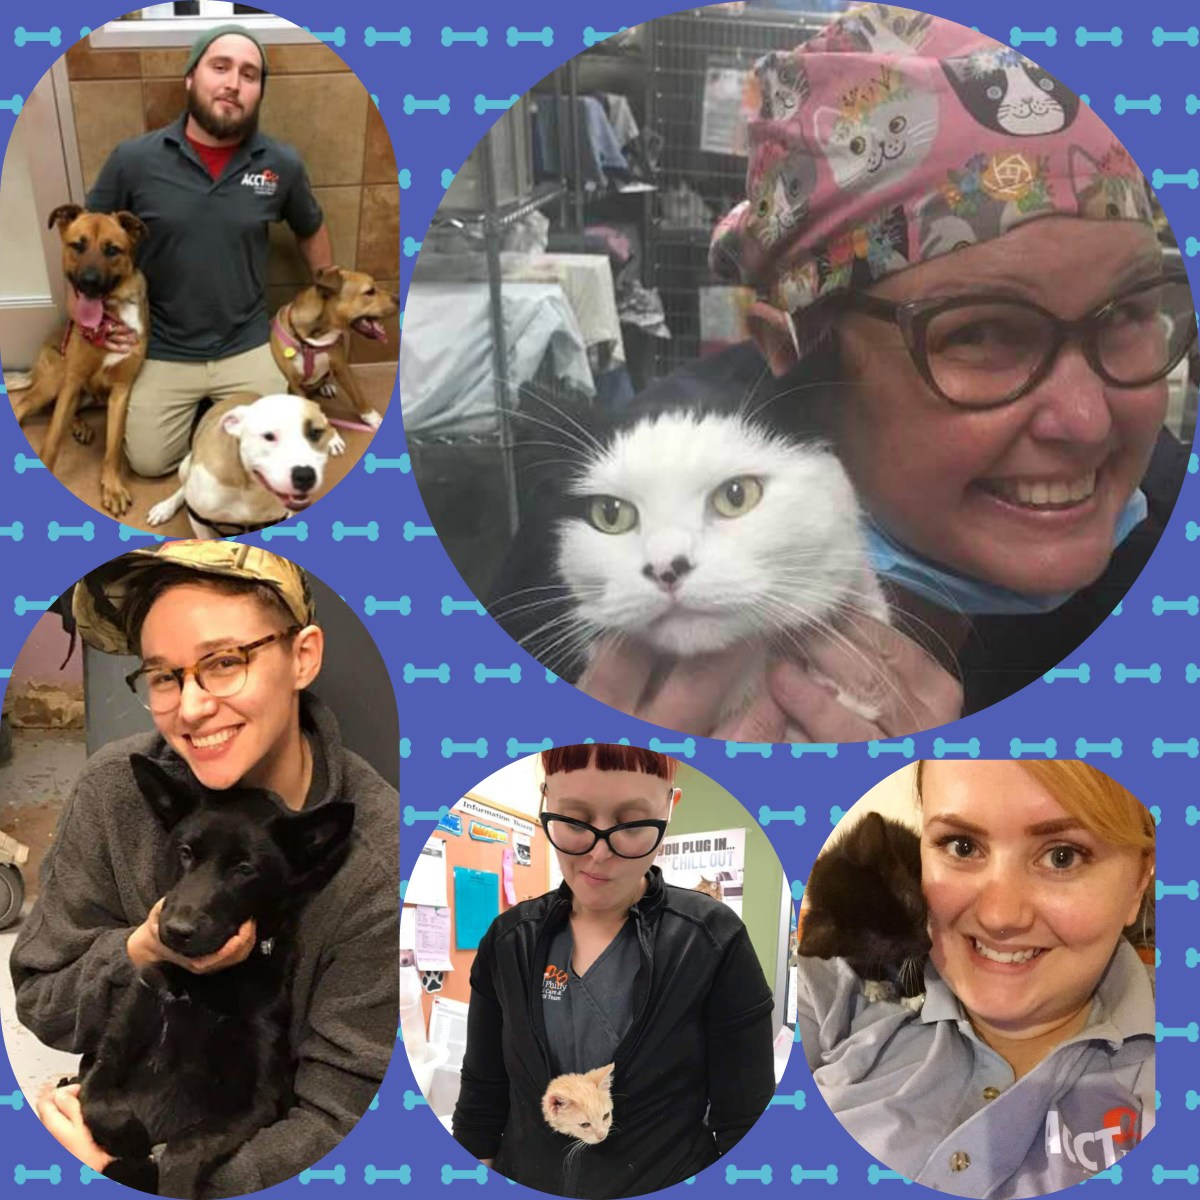 Collage of people with cats and dogs